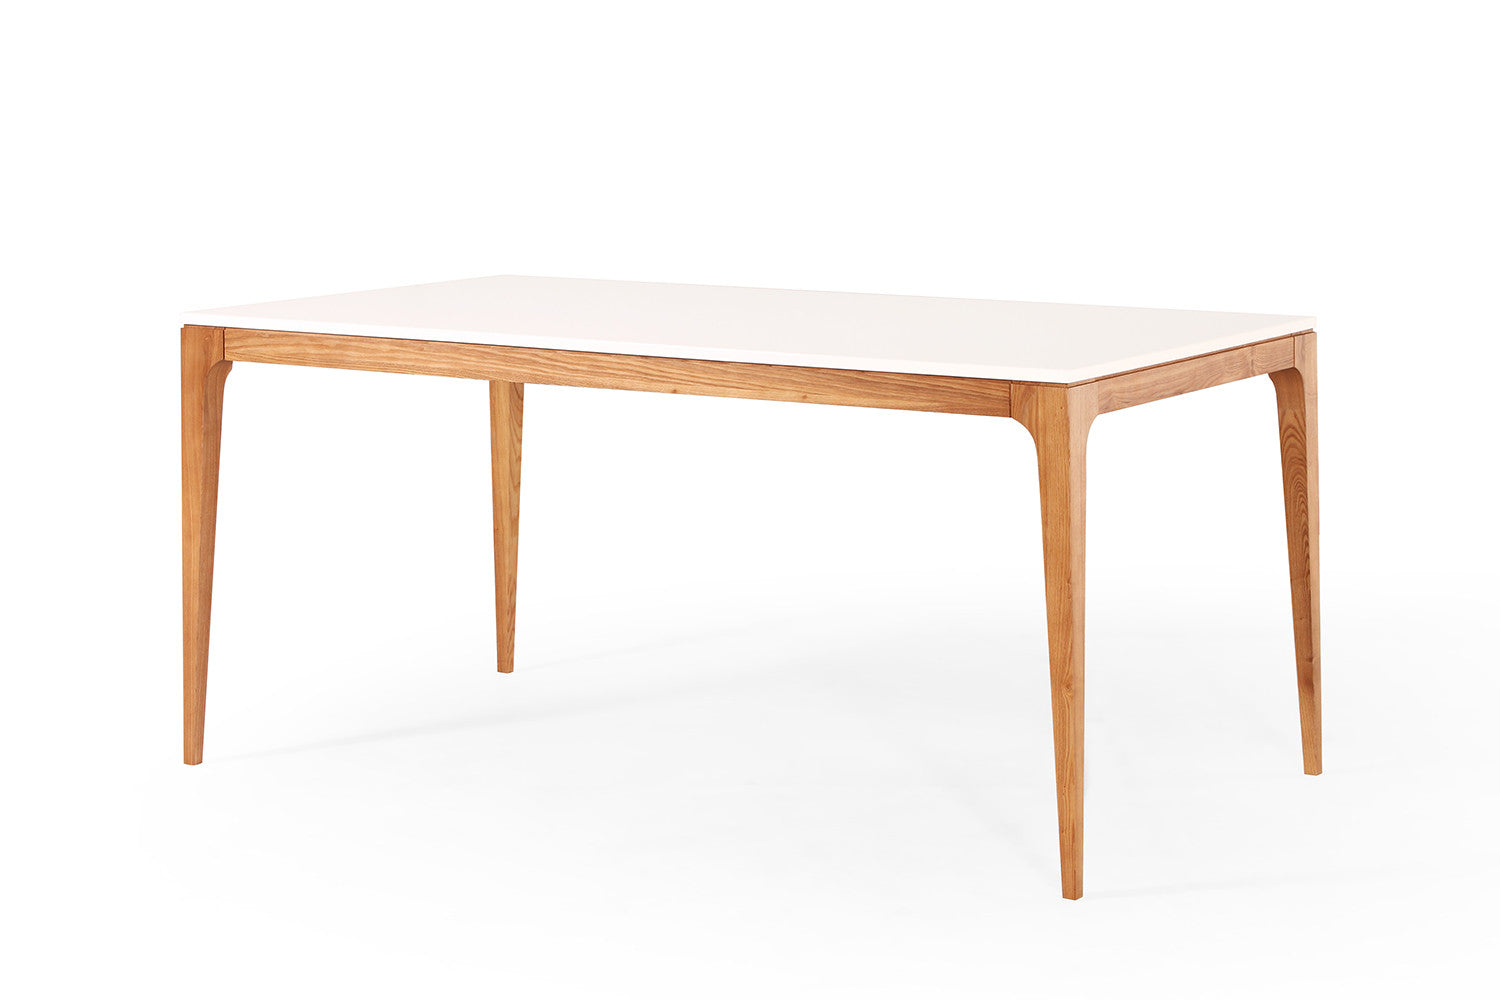 Table de repas design scandinave blanche et bois maggia for Table a manger scandinave bois